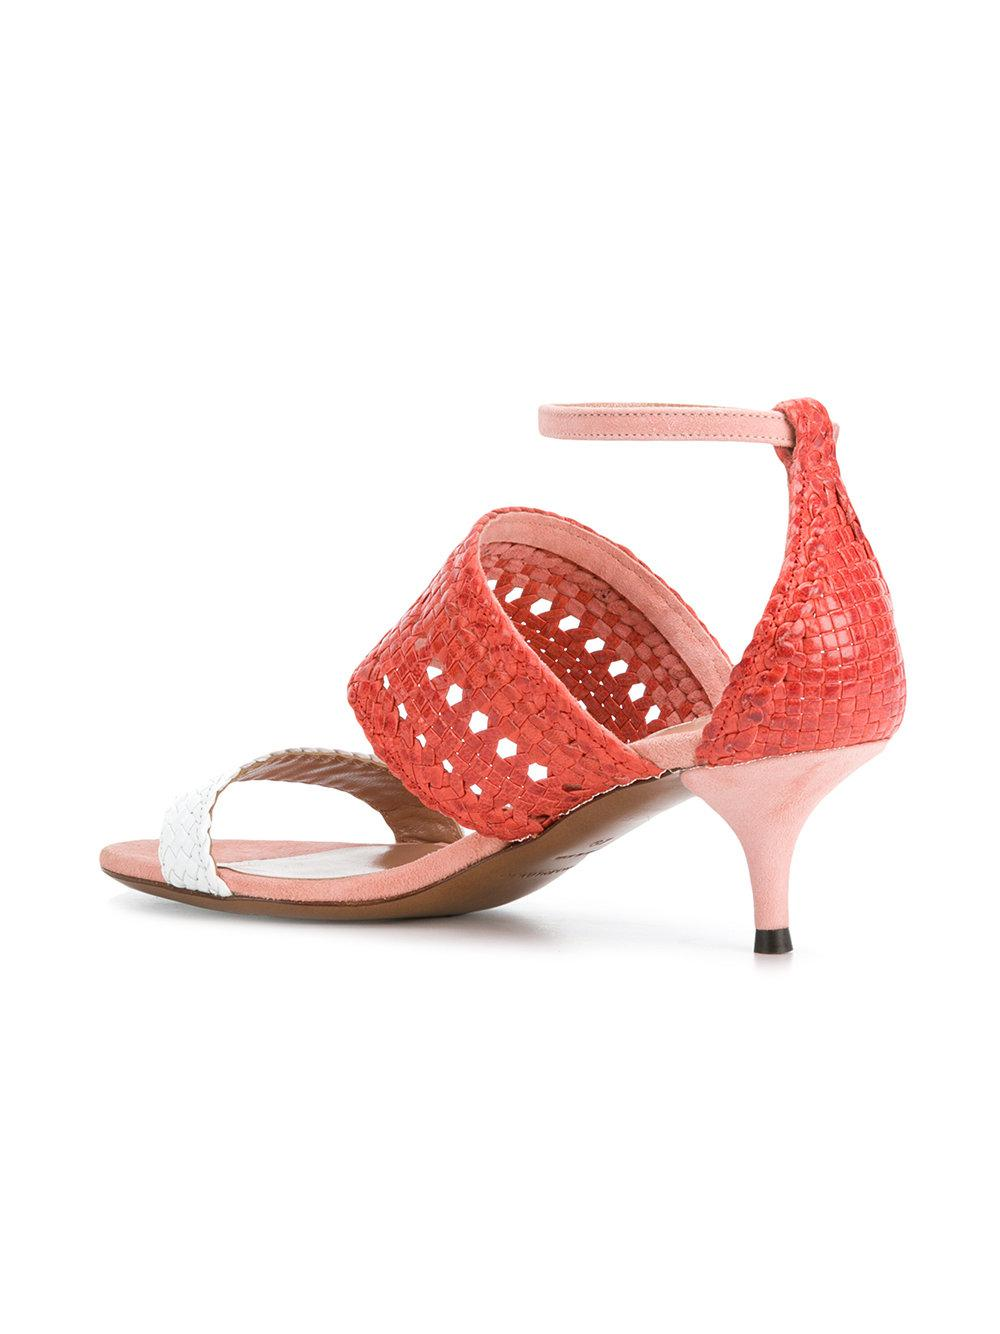 af66e2c3dcb Lyst - L Autre Chose Woven Detail Kitten Heels in Red